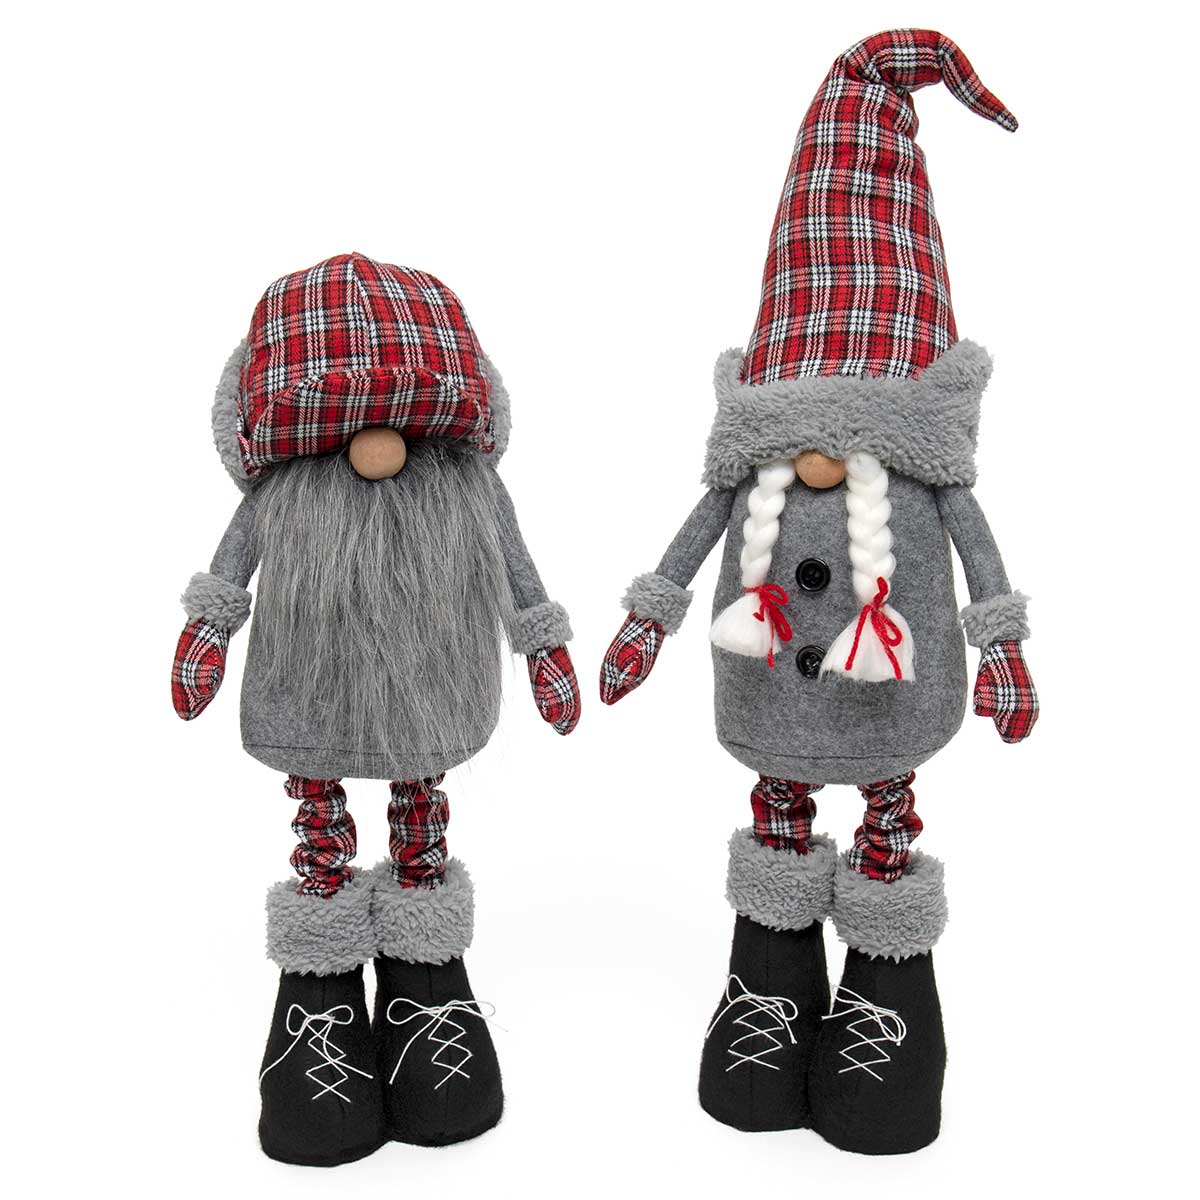 OUTDOOR PLAID EXPANDABLE GNOME COUPLE I'M EXPANDABLE